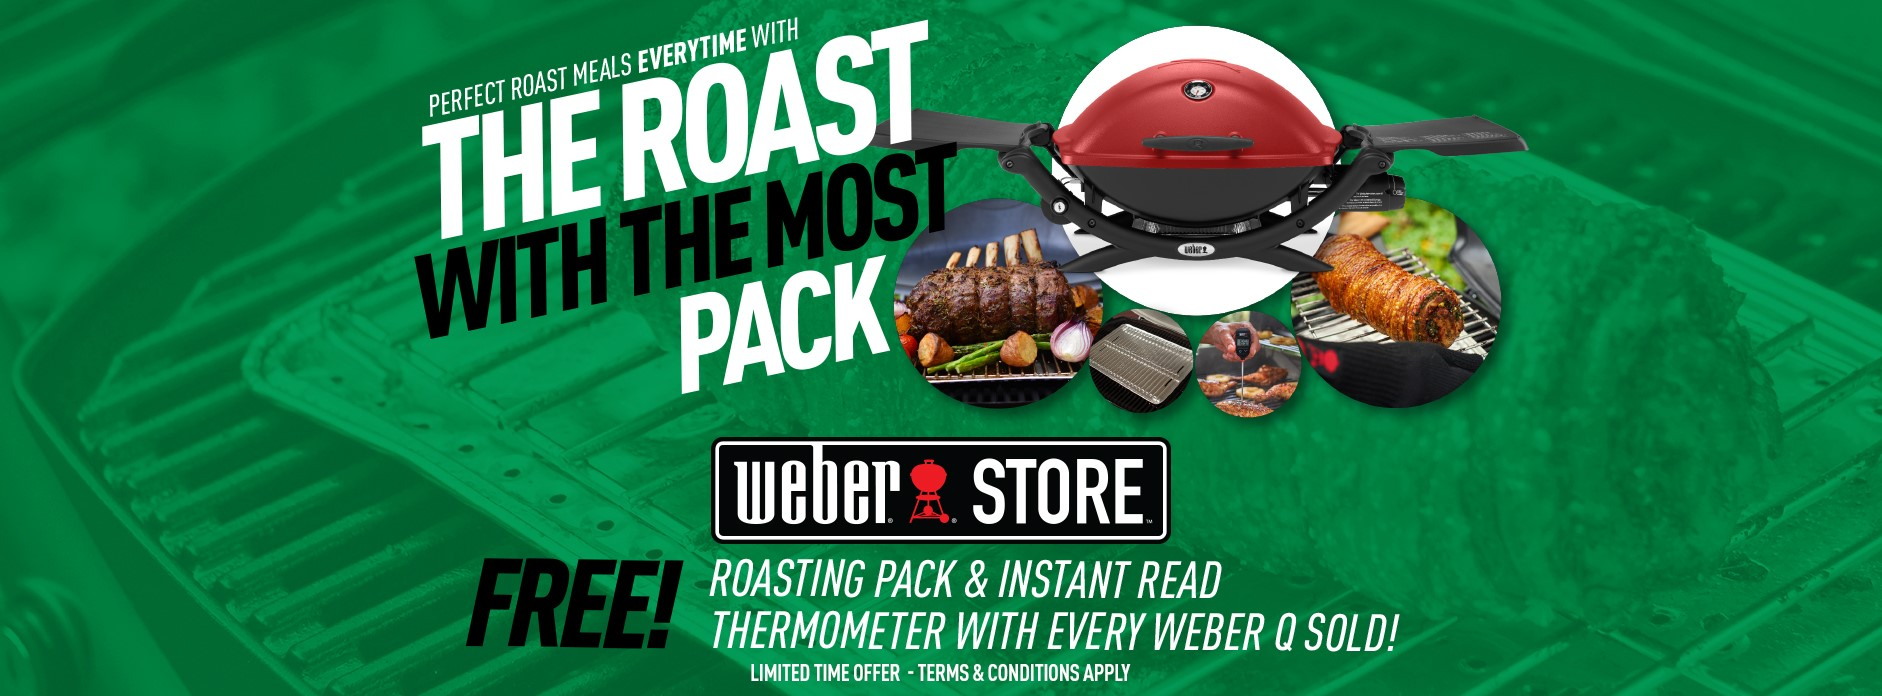 Rawsons Appliances Bathrooms - Weber Roast With The Most Offer